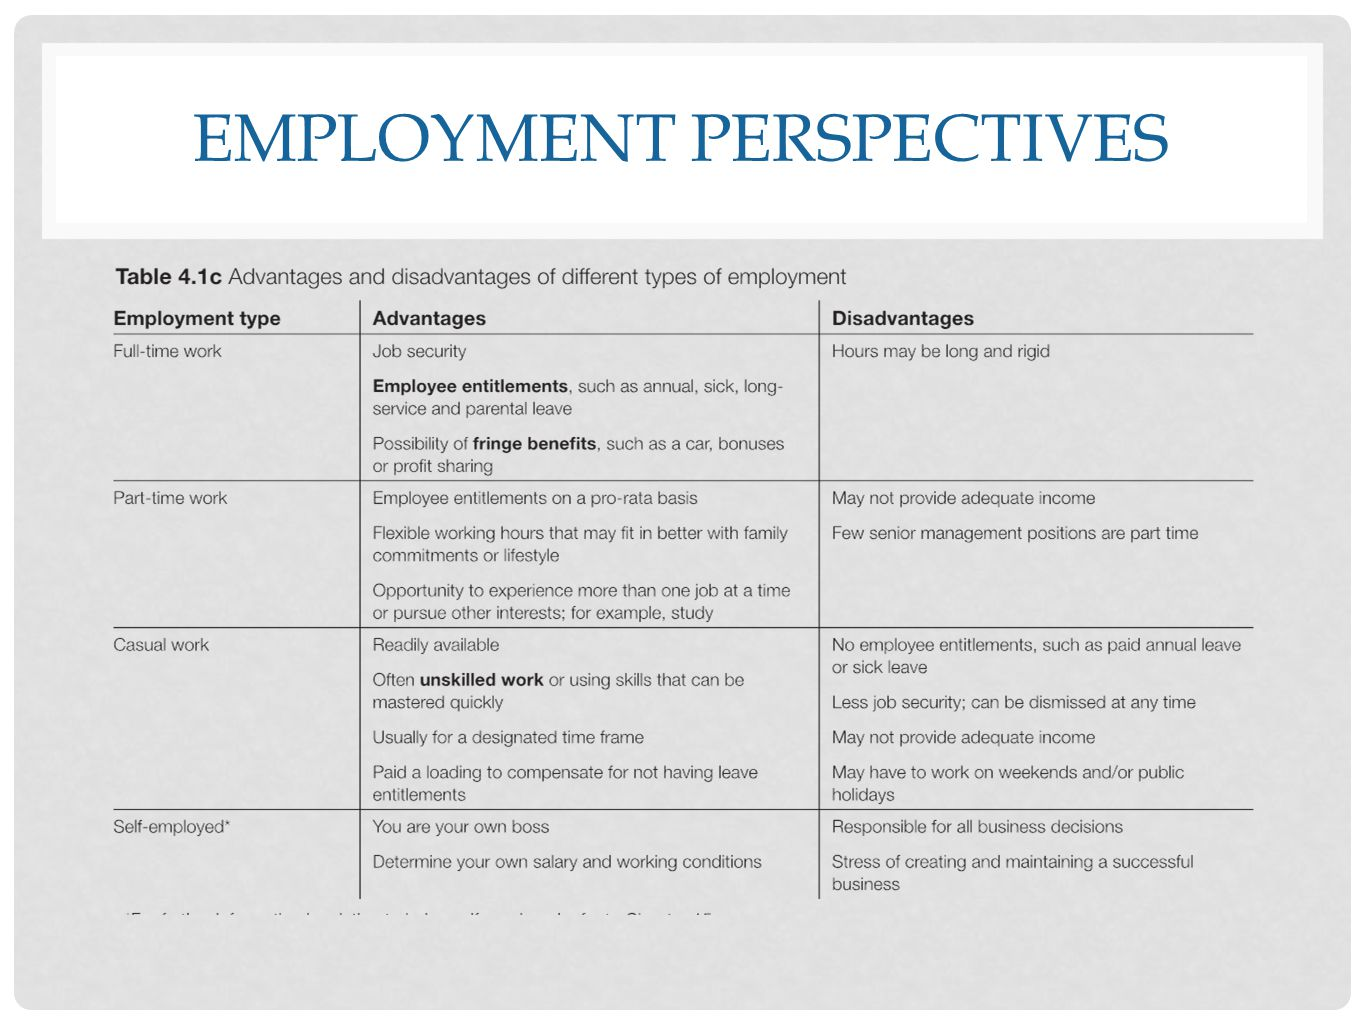 EMPLOYMENT PERSPECTIVES